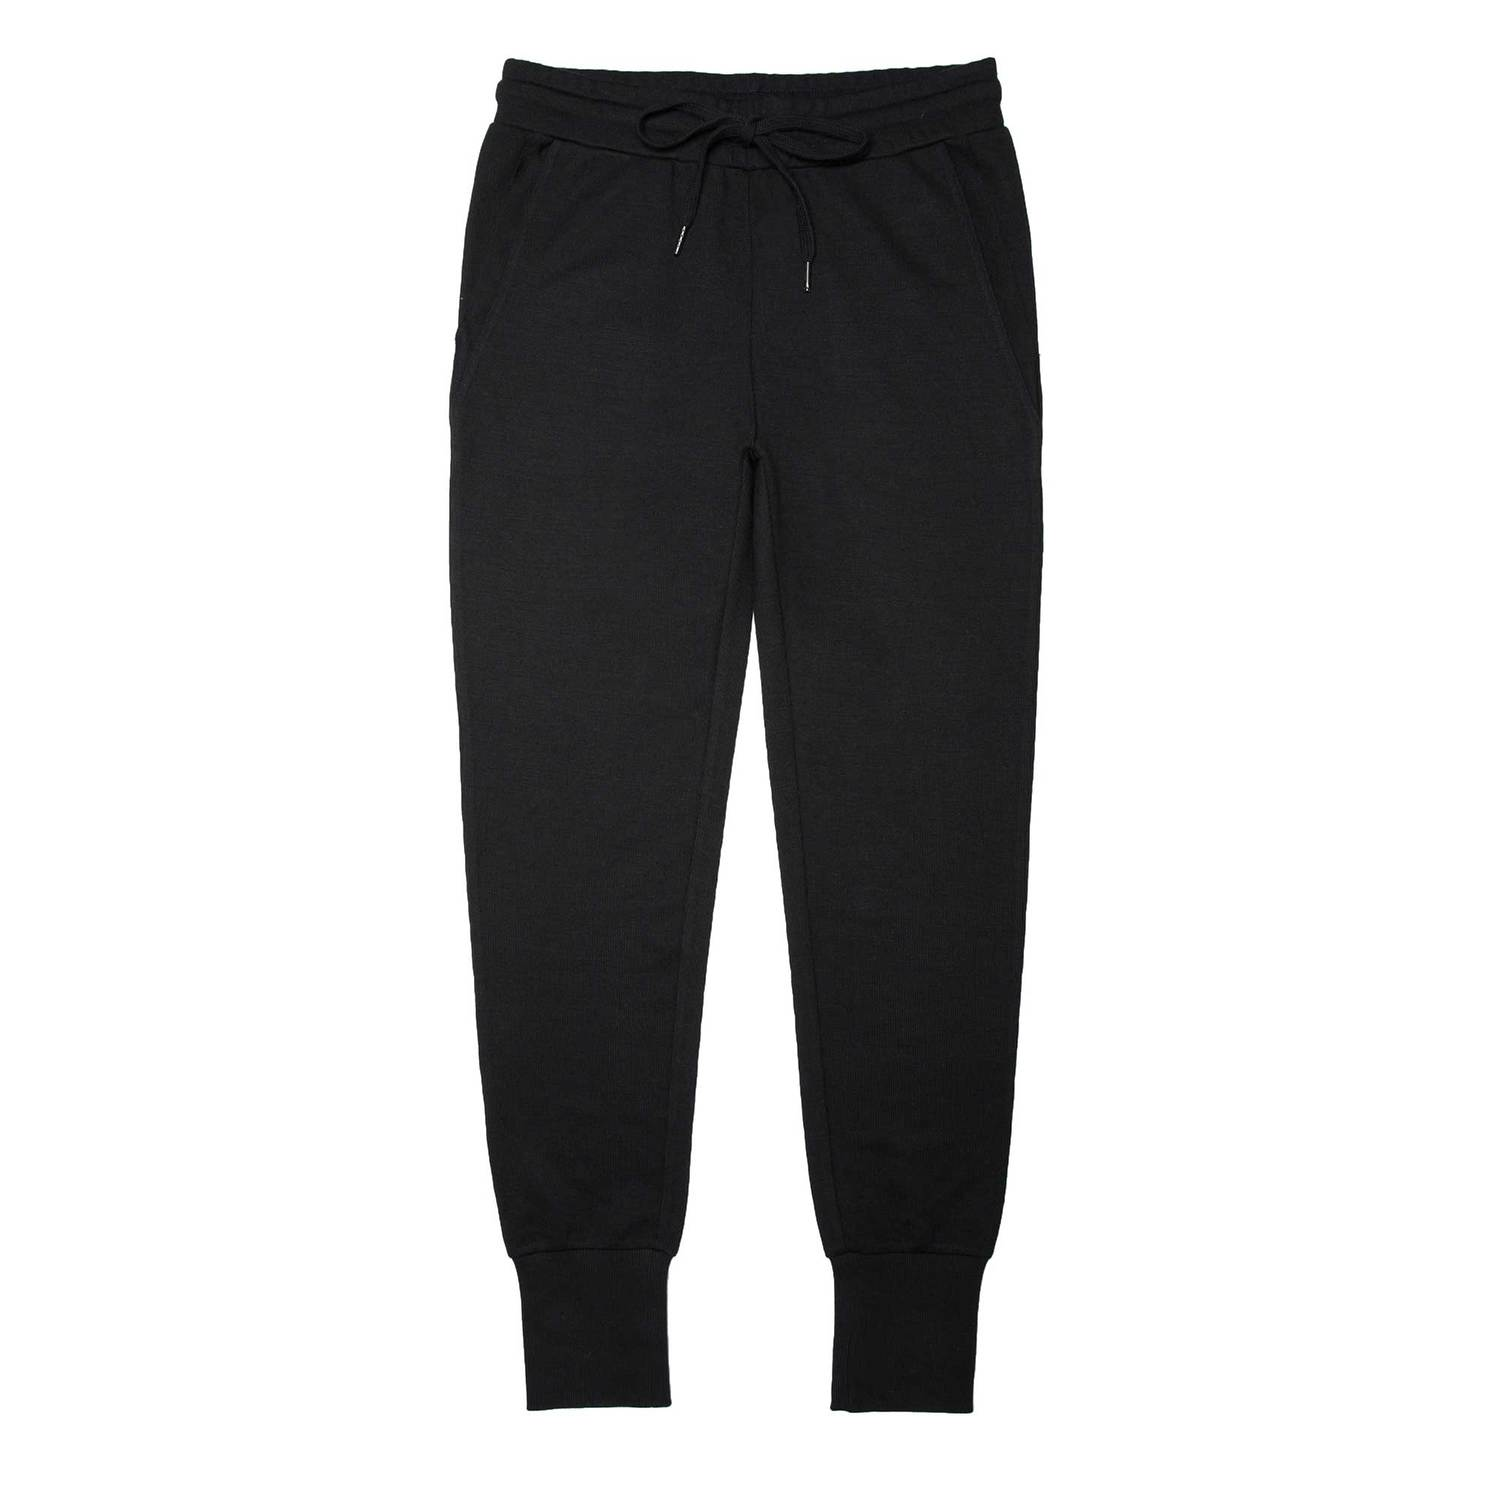 ab2de16d5 Womens Tapered Jogger Pants In Black $85 | DSTLD